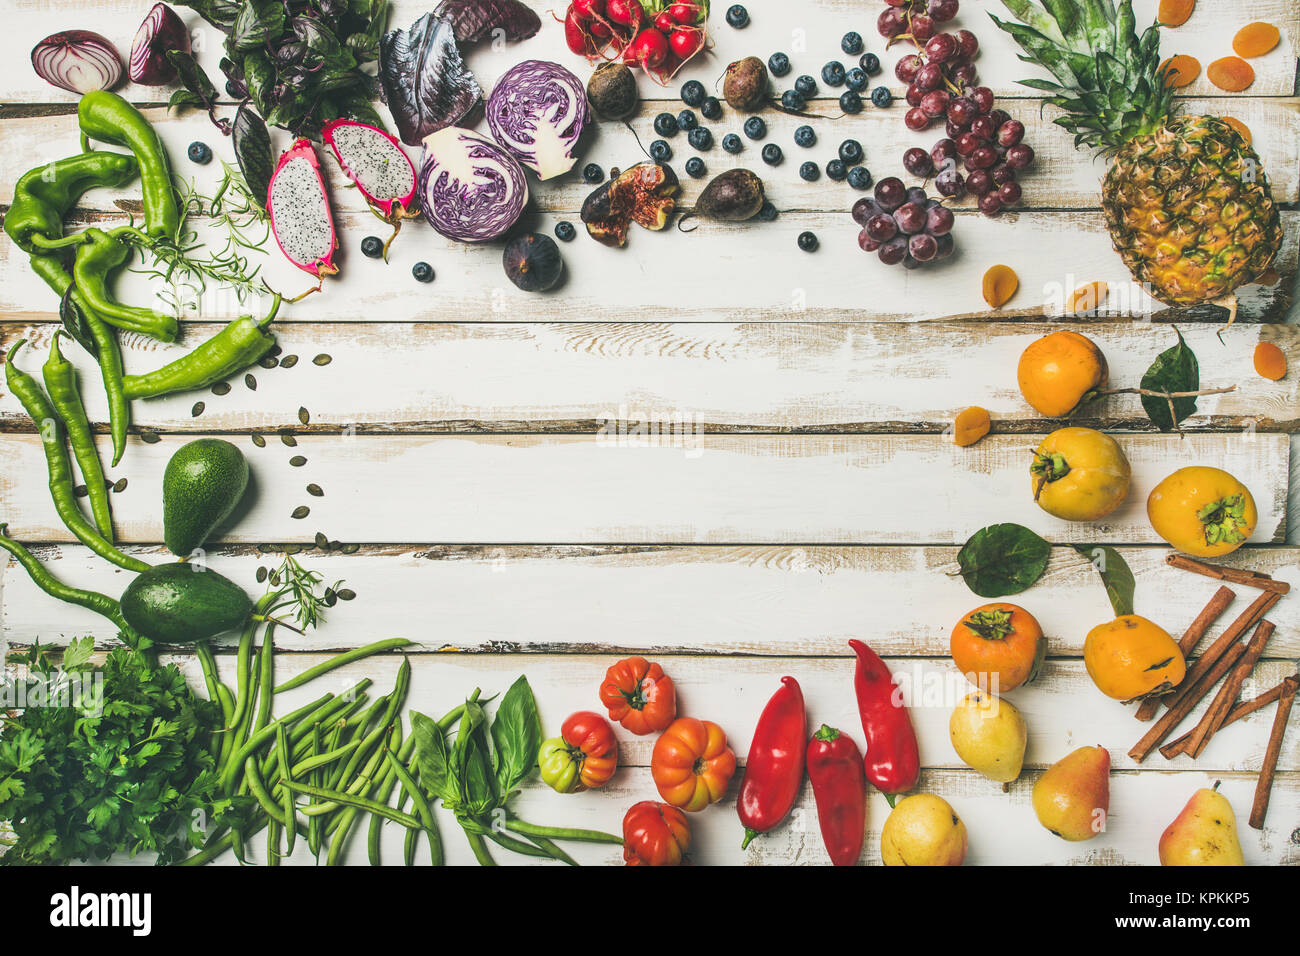 Flat-lay of fresh fruit, vegetables, greens and superfoods - Stock Image